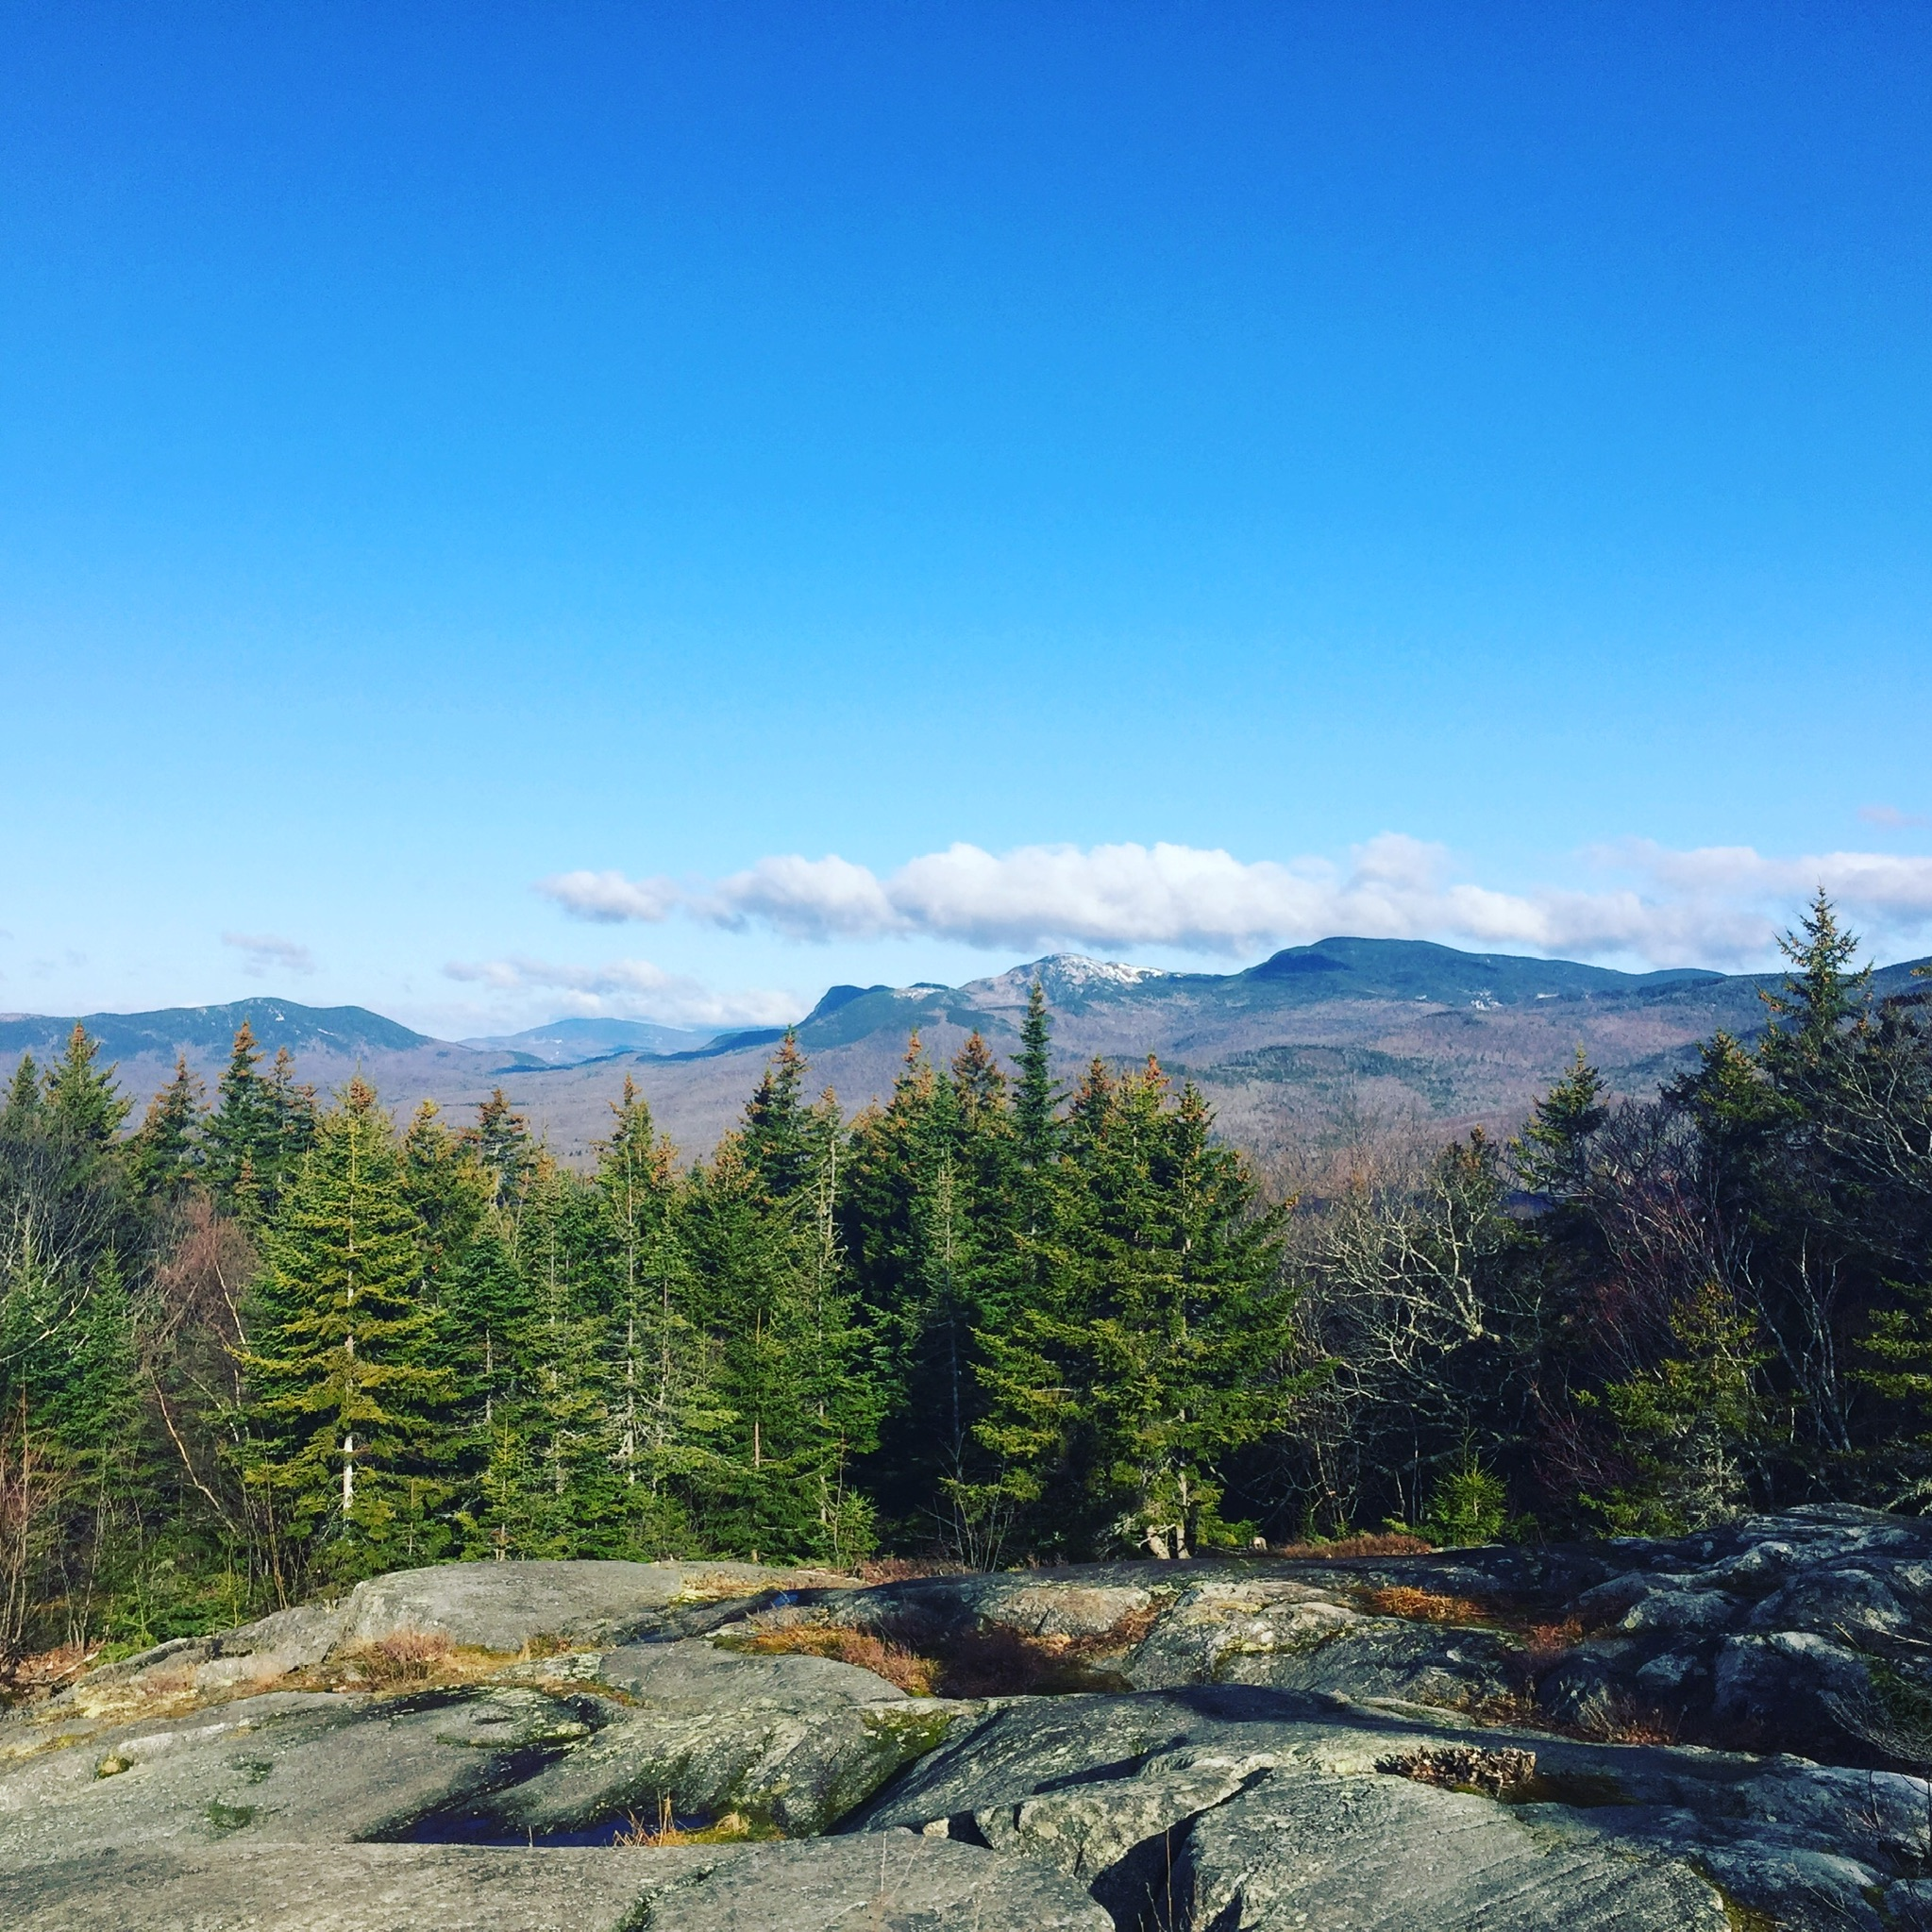 View of (right to left) West, Old Blue, Tumbledown, Little Jackson, and Jackson Mountains from Center Hill Nature Trail, Mount Blue State Park, Weld, Maine.